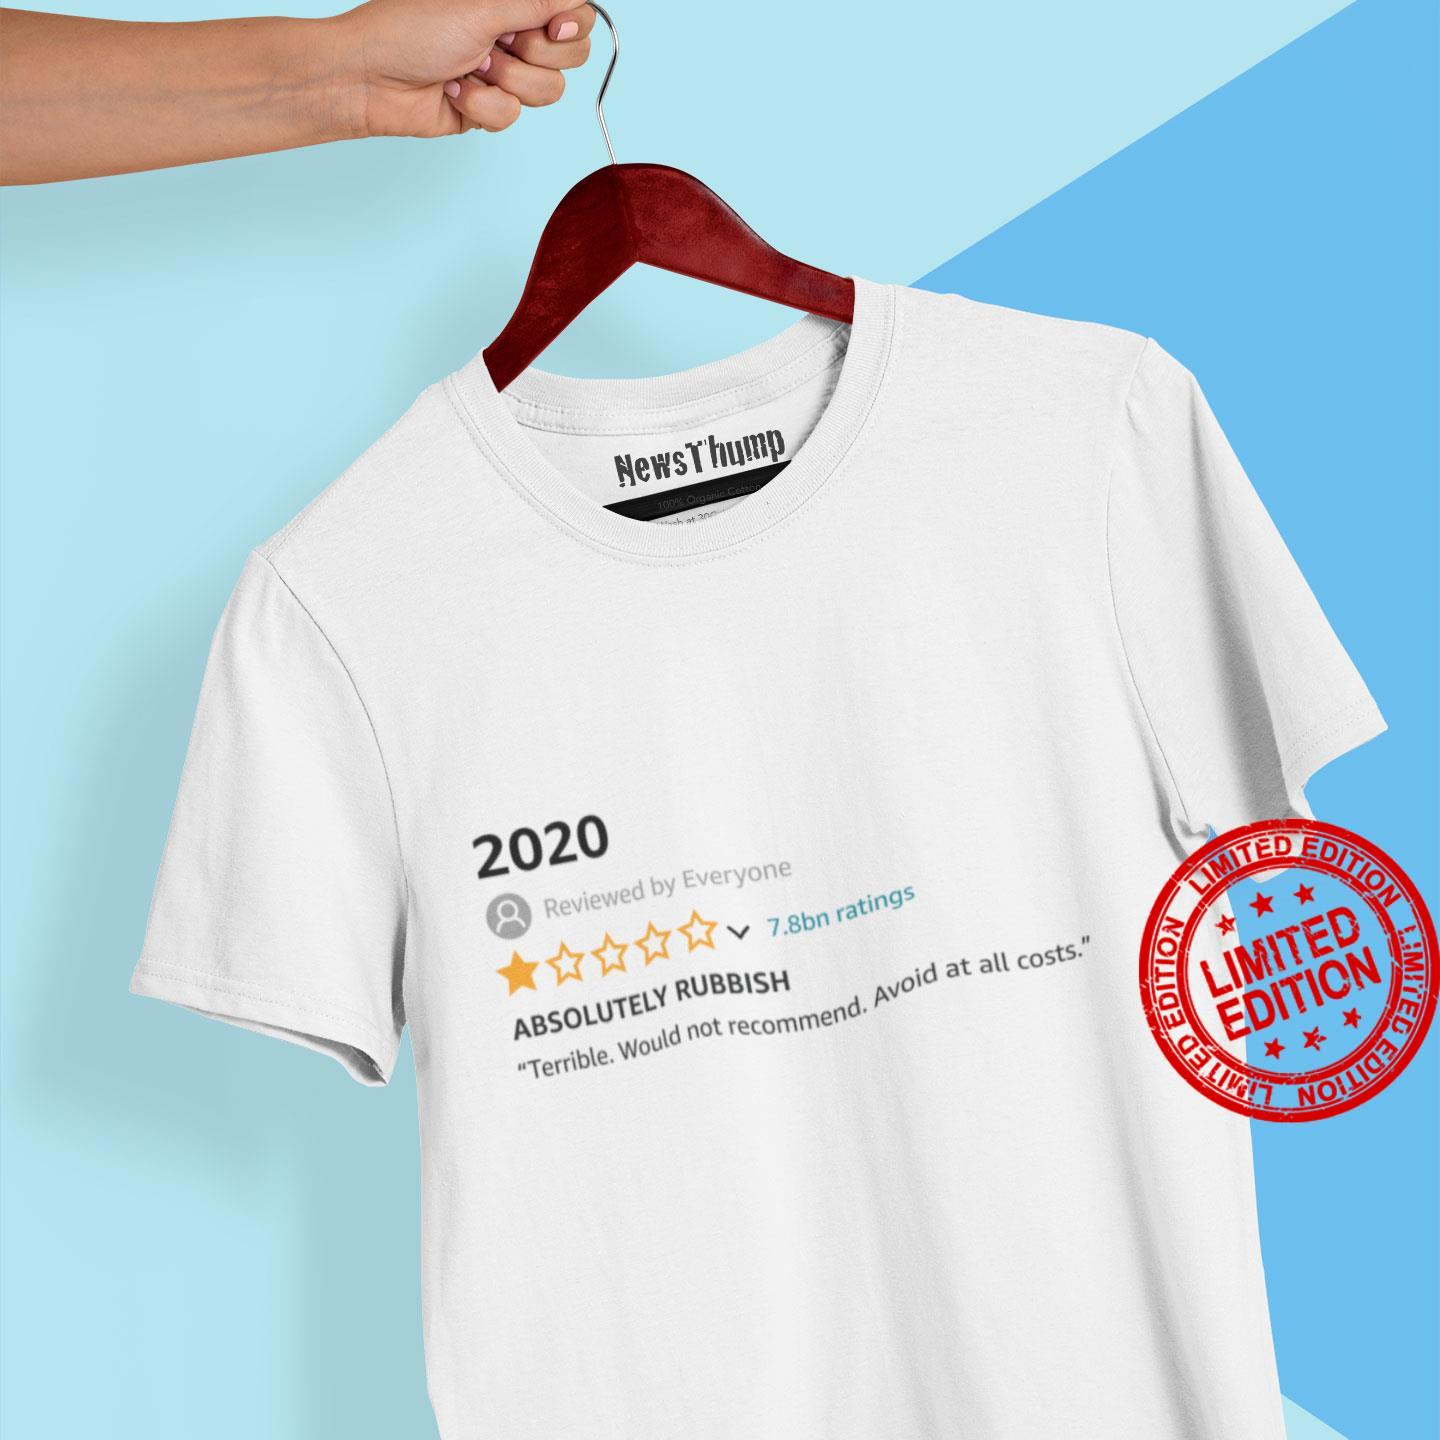 2020 Absolutely Rubbish Terrible Would Not Recommend Avoid At All Costs Shirt